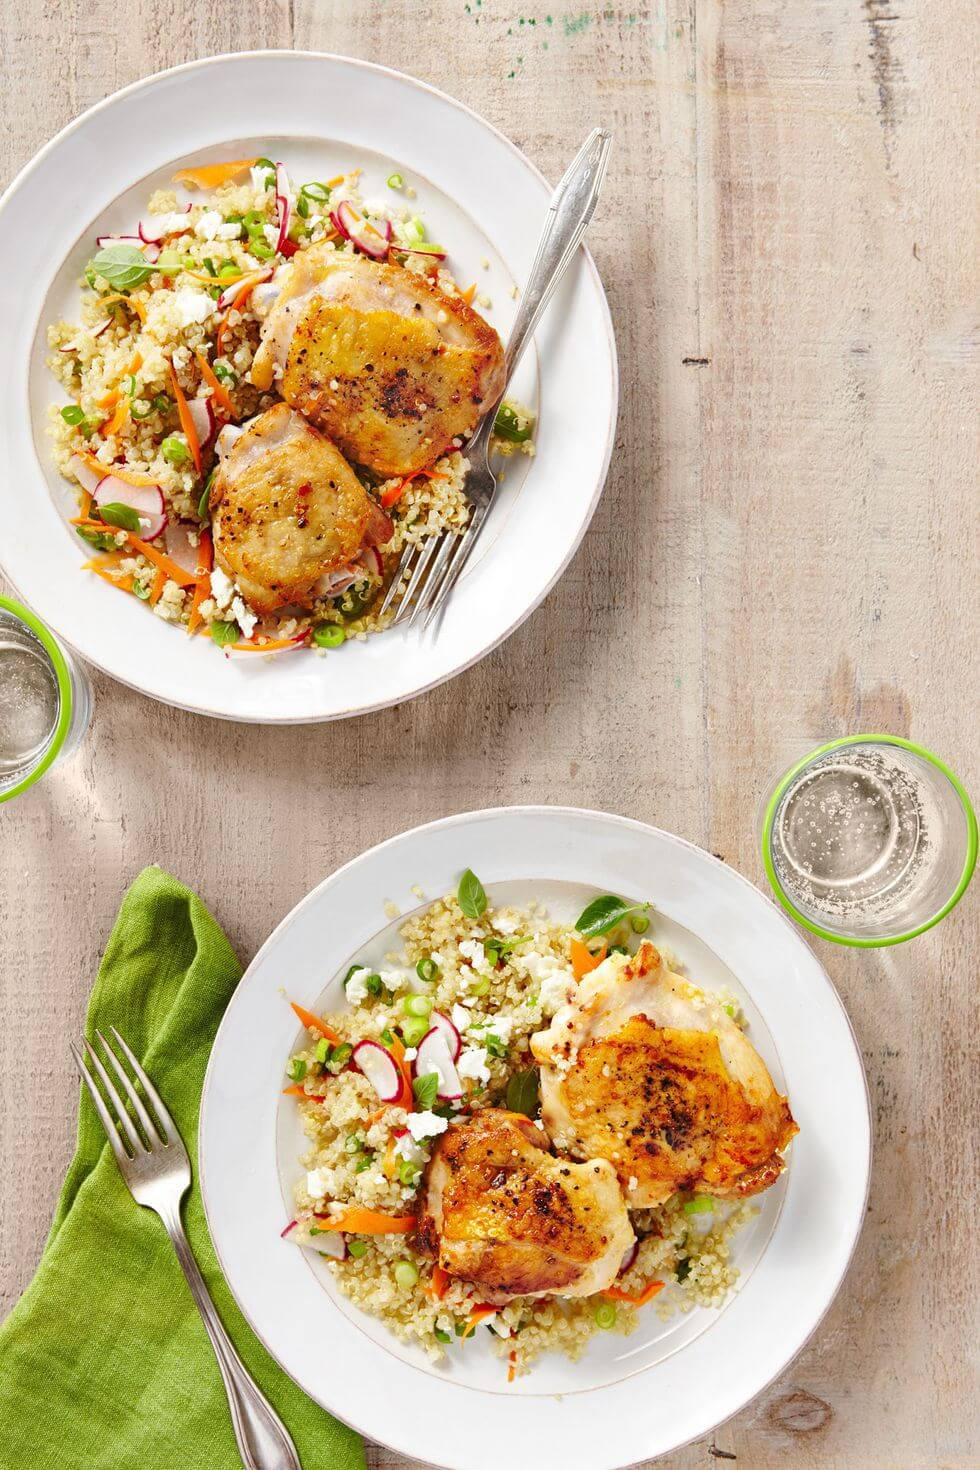 Easy Sunday Dinner  90 Delicious Sunday Dinner Ideas Easy and Quick [For Two